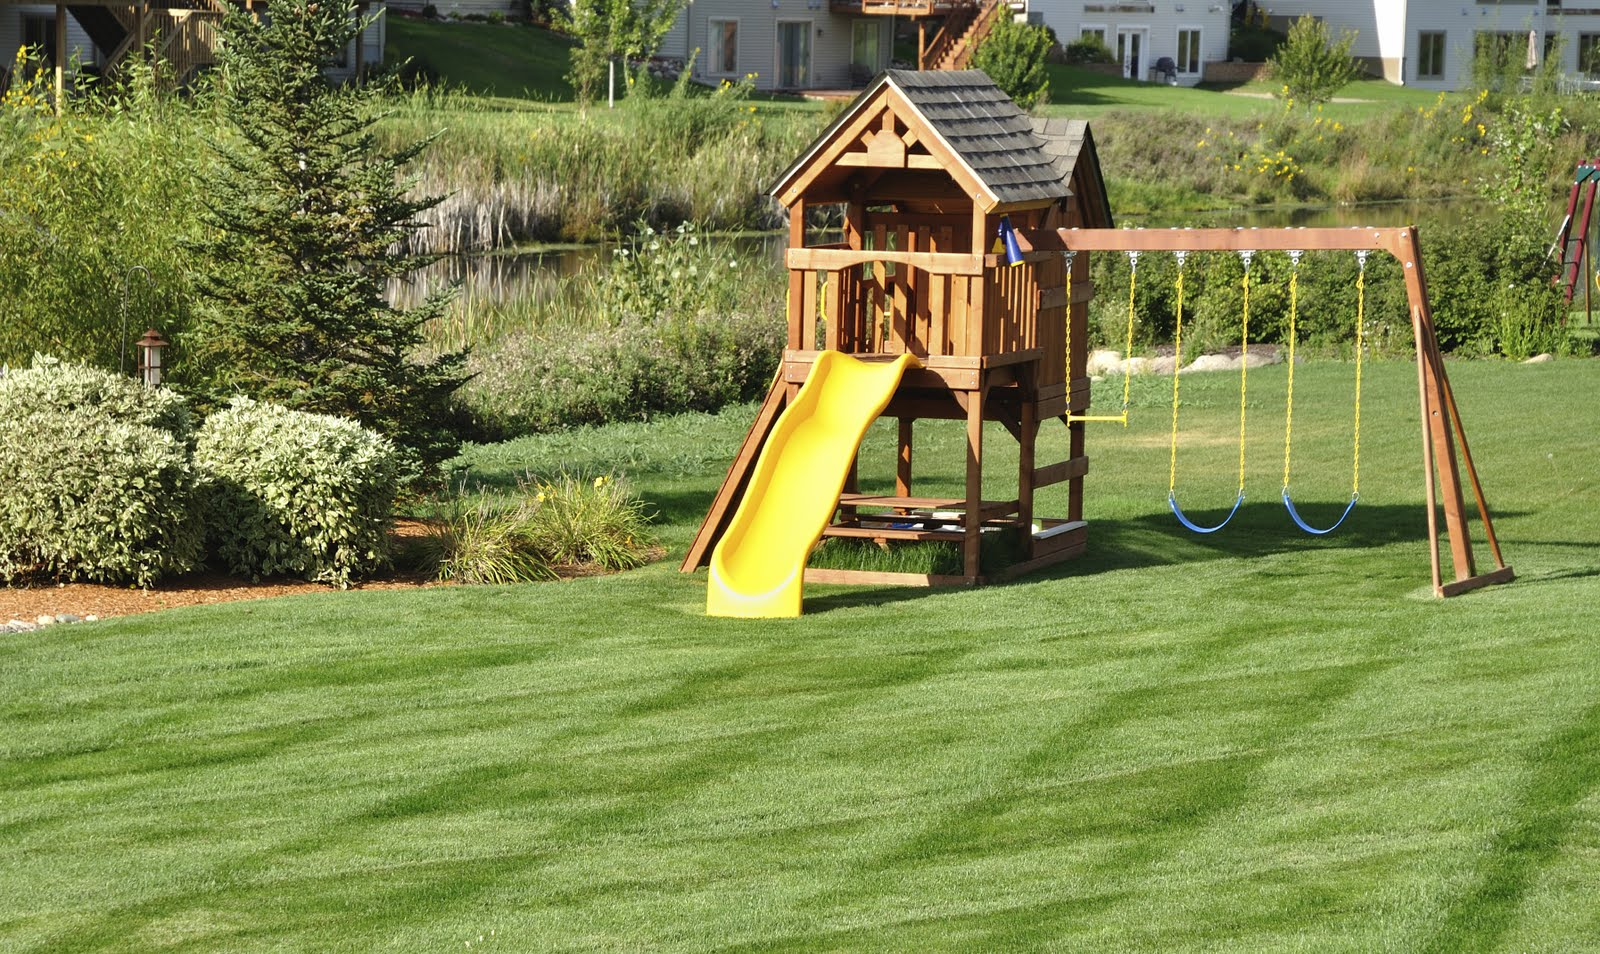 safety in backyard playgrounds is obviously just as necessary as at